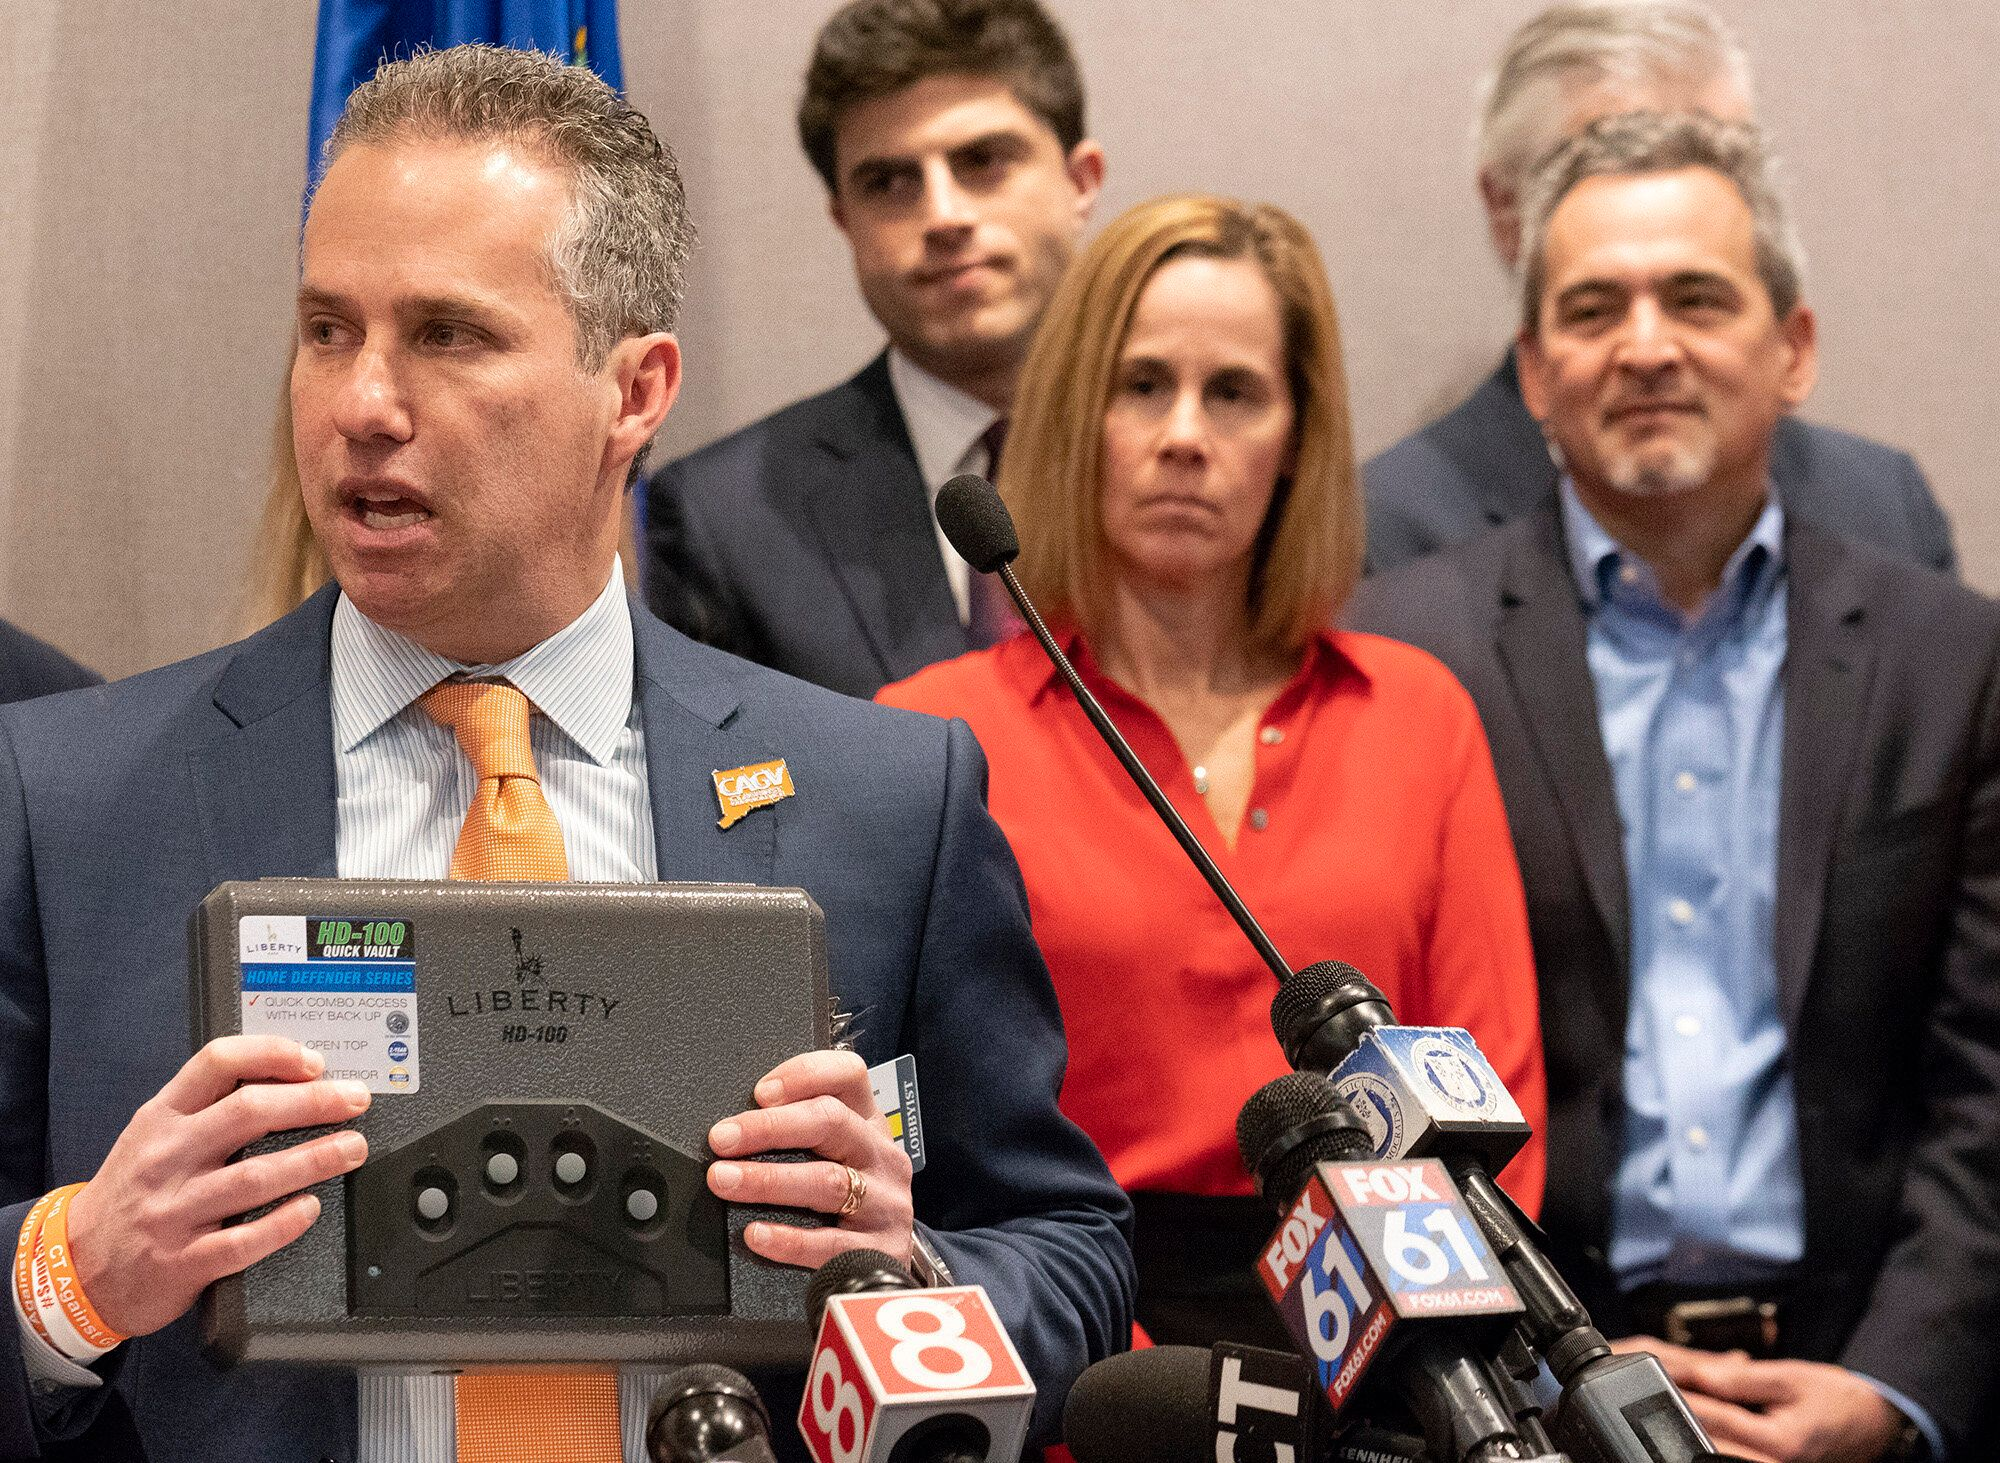 Michael Song, at right, and his wife, Kristen, center, along with legislators and gun-safety advocates, pushed for Connecticu